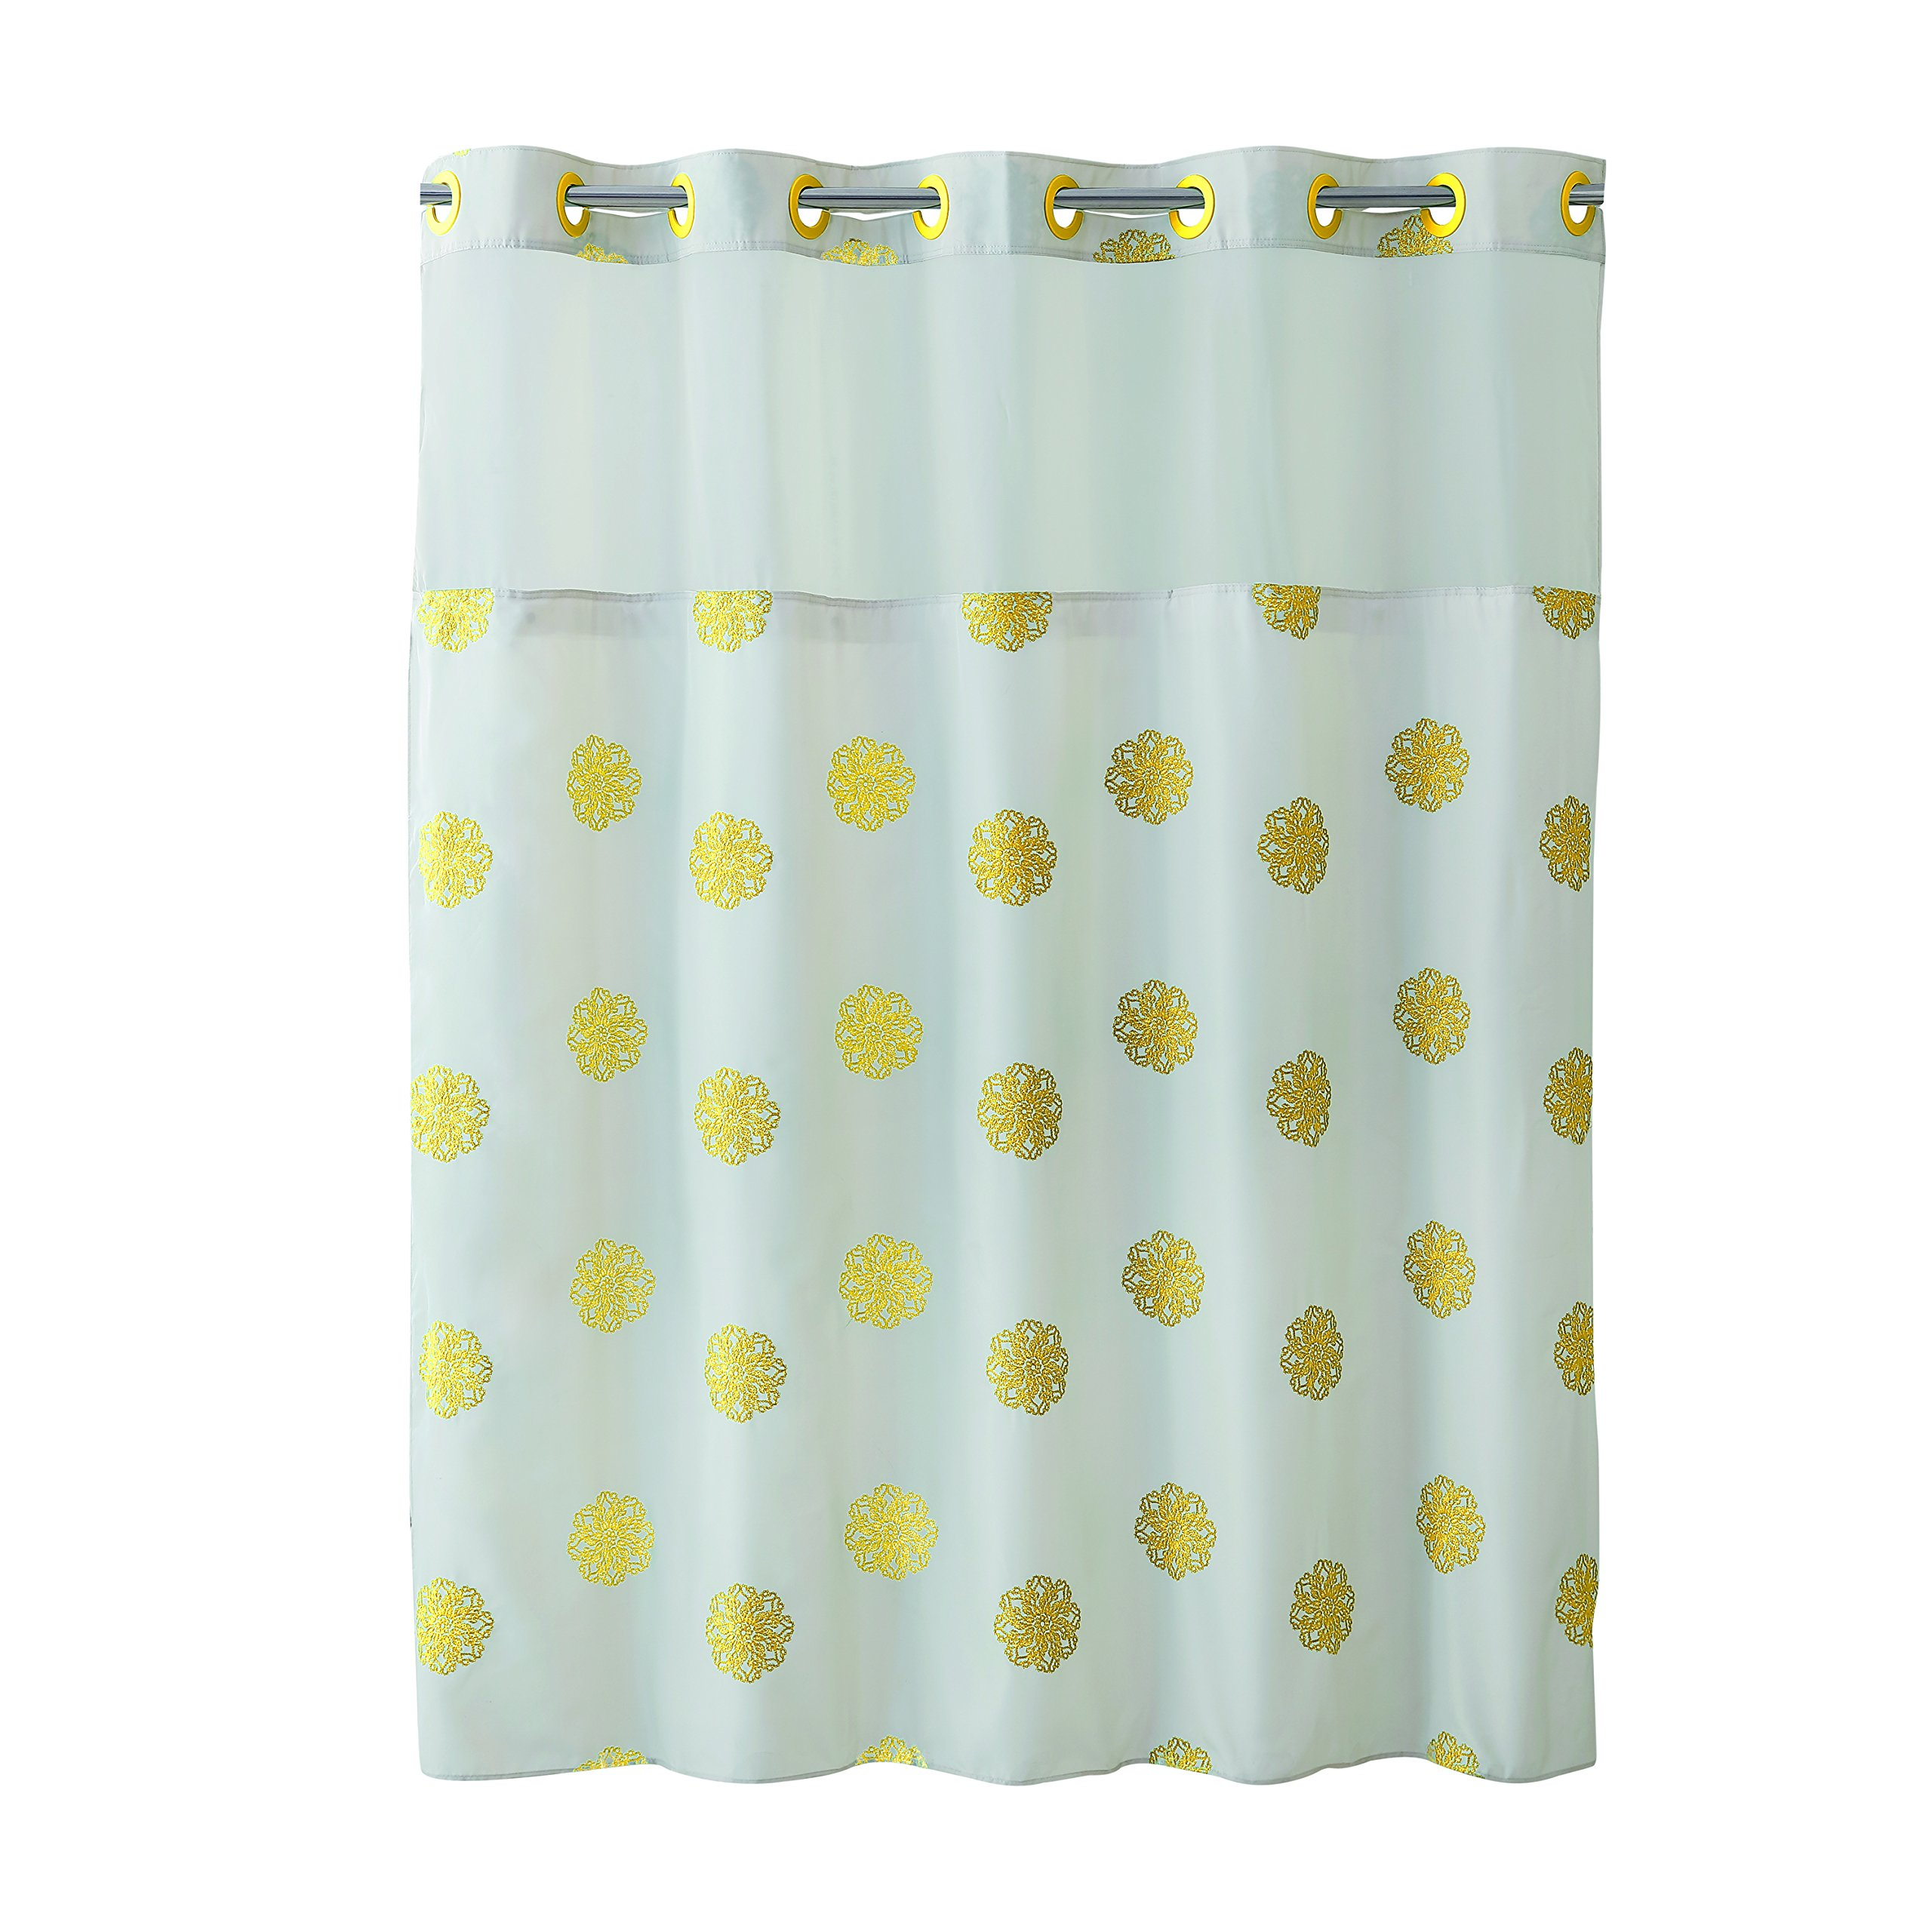 Hookless RBH40MY033 Sunburst Floral Polyester with PEVA Liner and Flex-On Rings Shower Curtain, White/Yellow